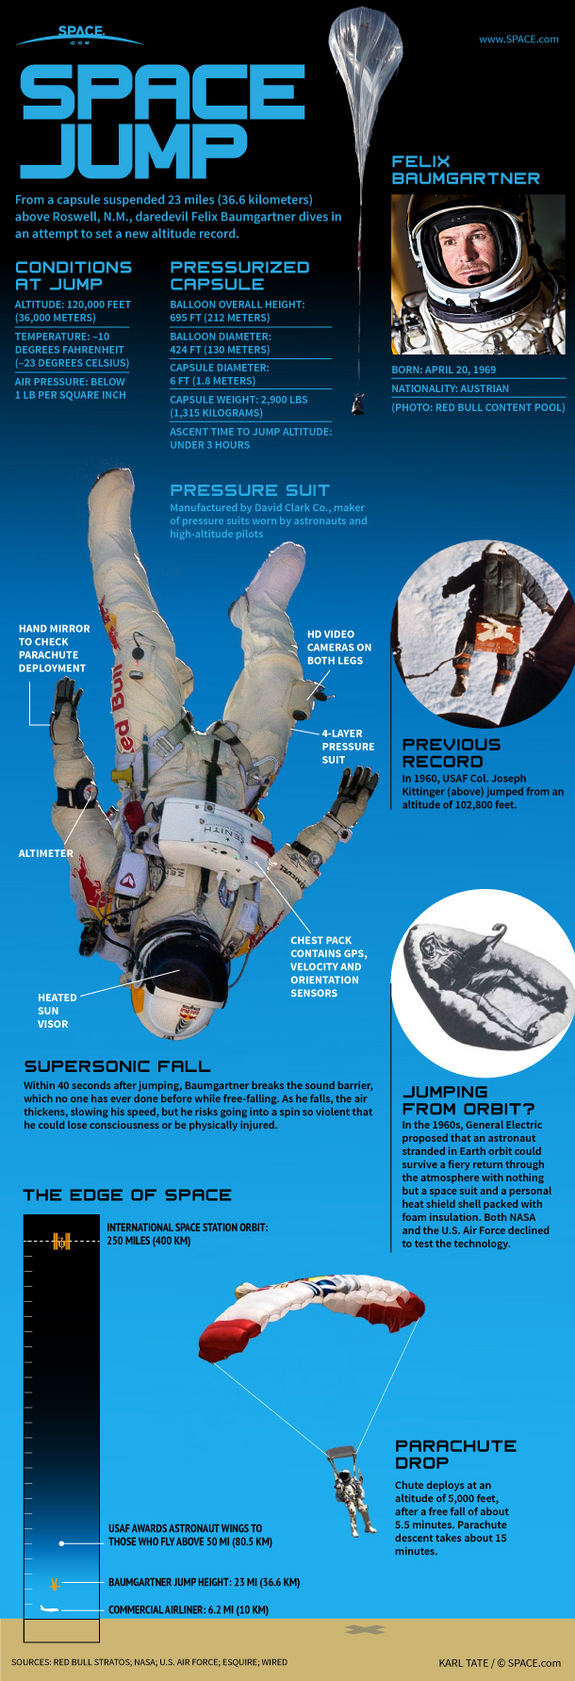 Find out how a record-breaking supersonic sky dive from space works, in this SPACE.com infographic.